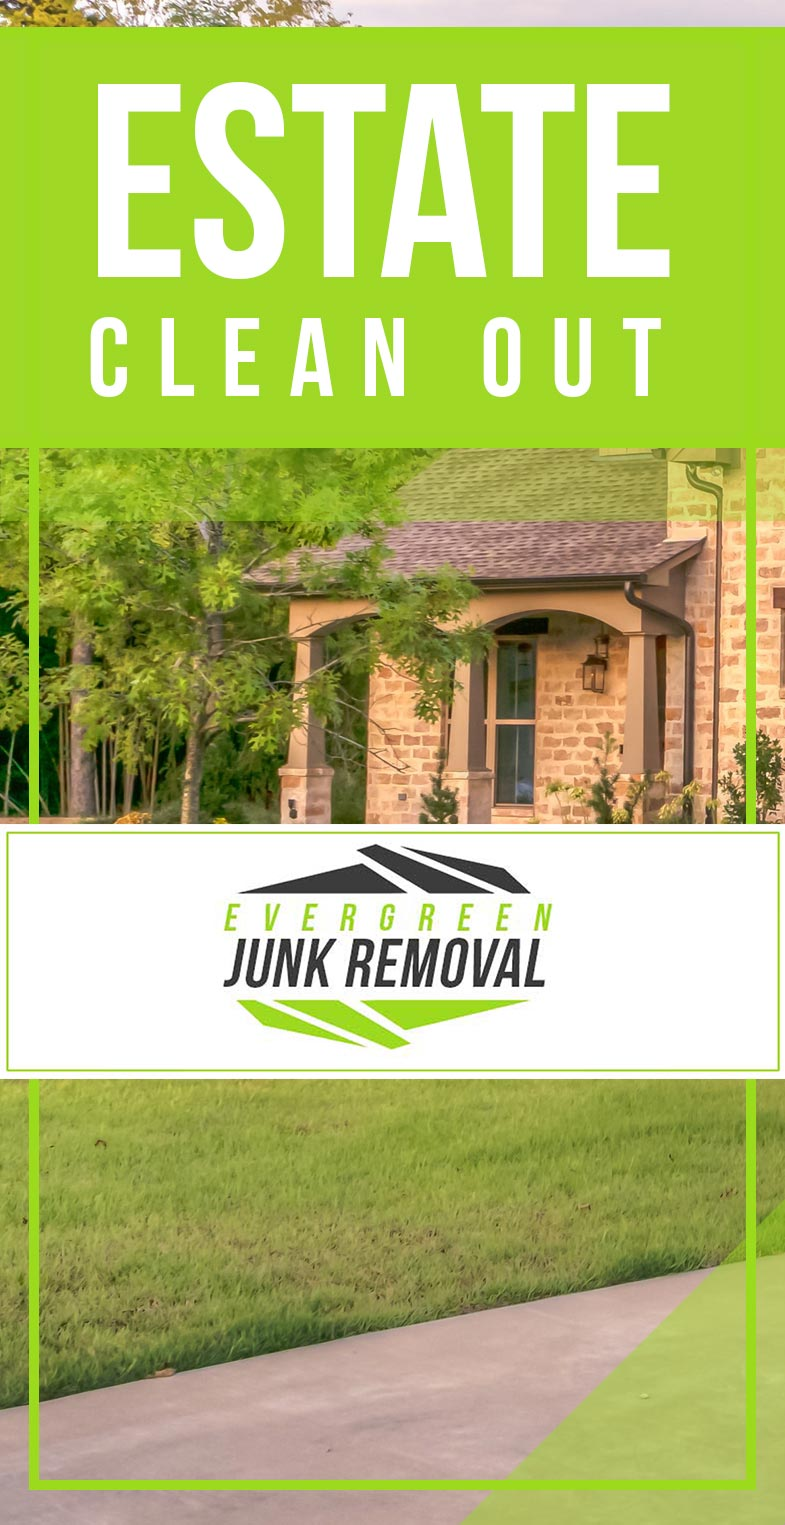 Junk Removal Palm Beach Gardens Estate Clean Out